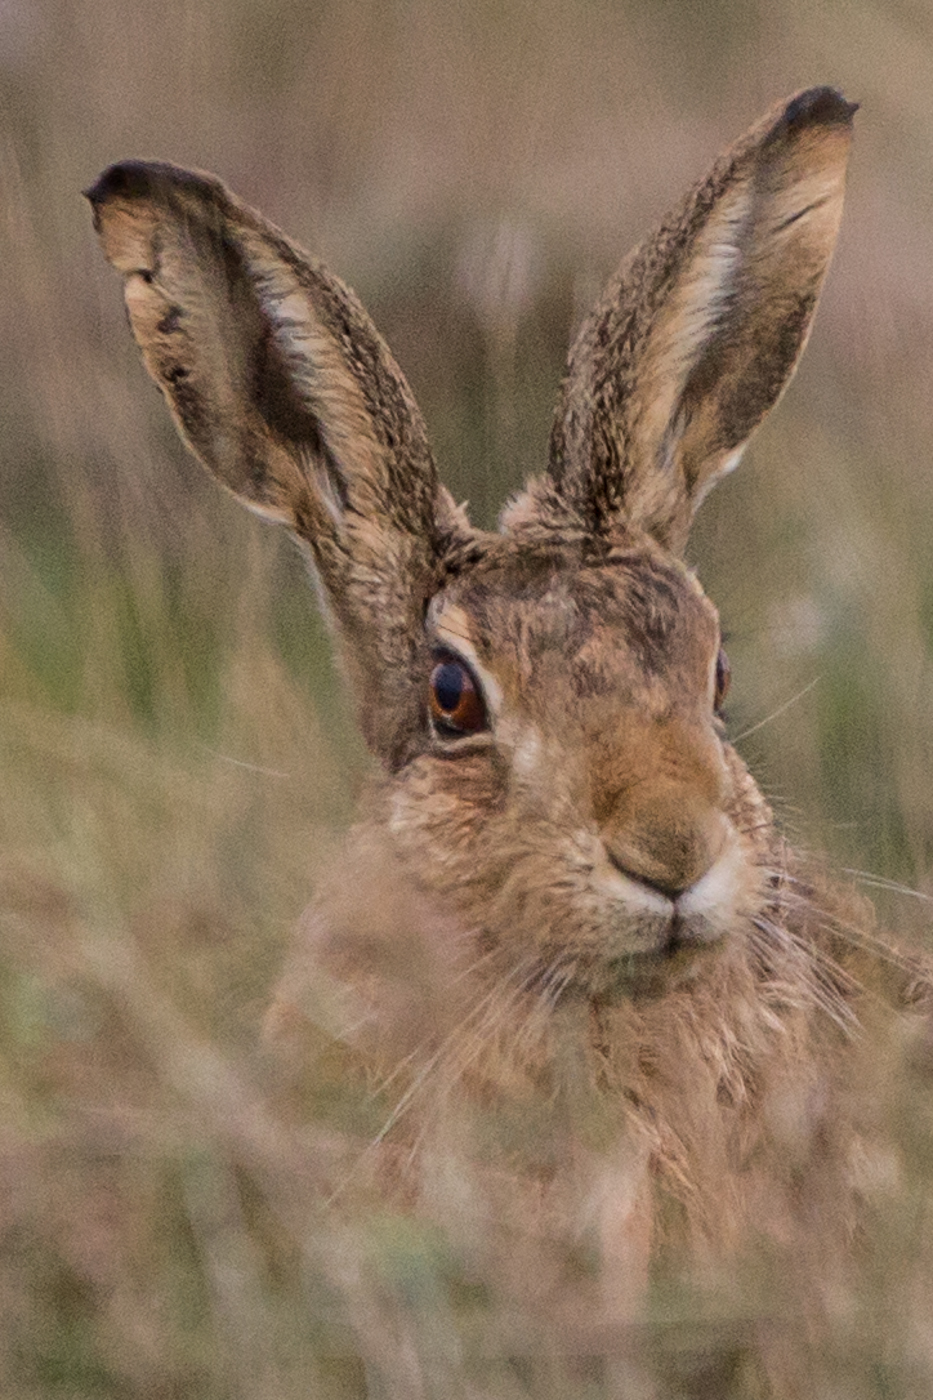 The Hares Lament